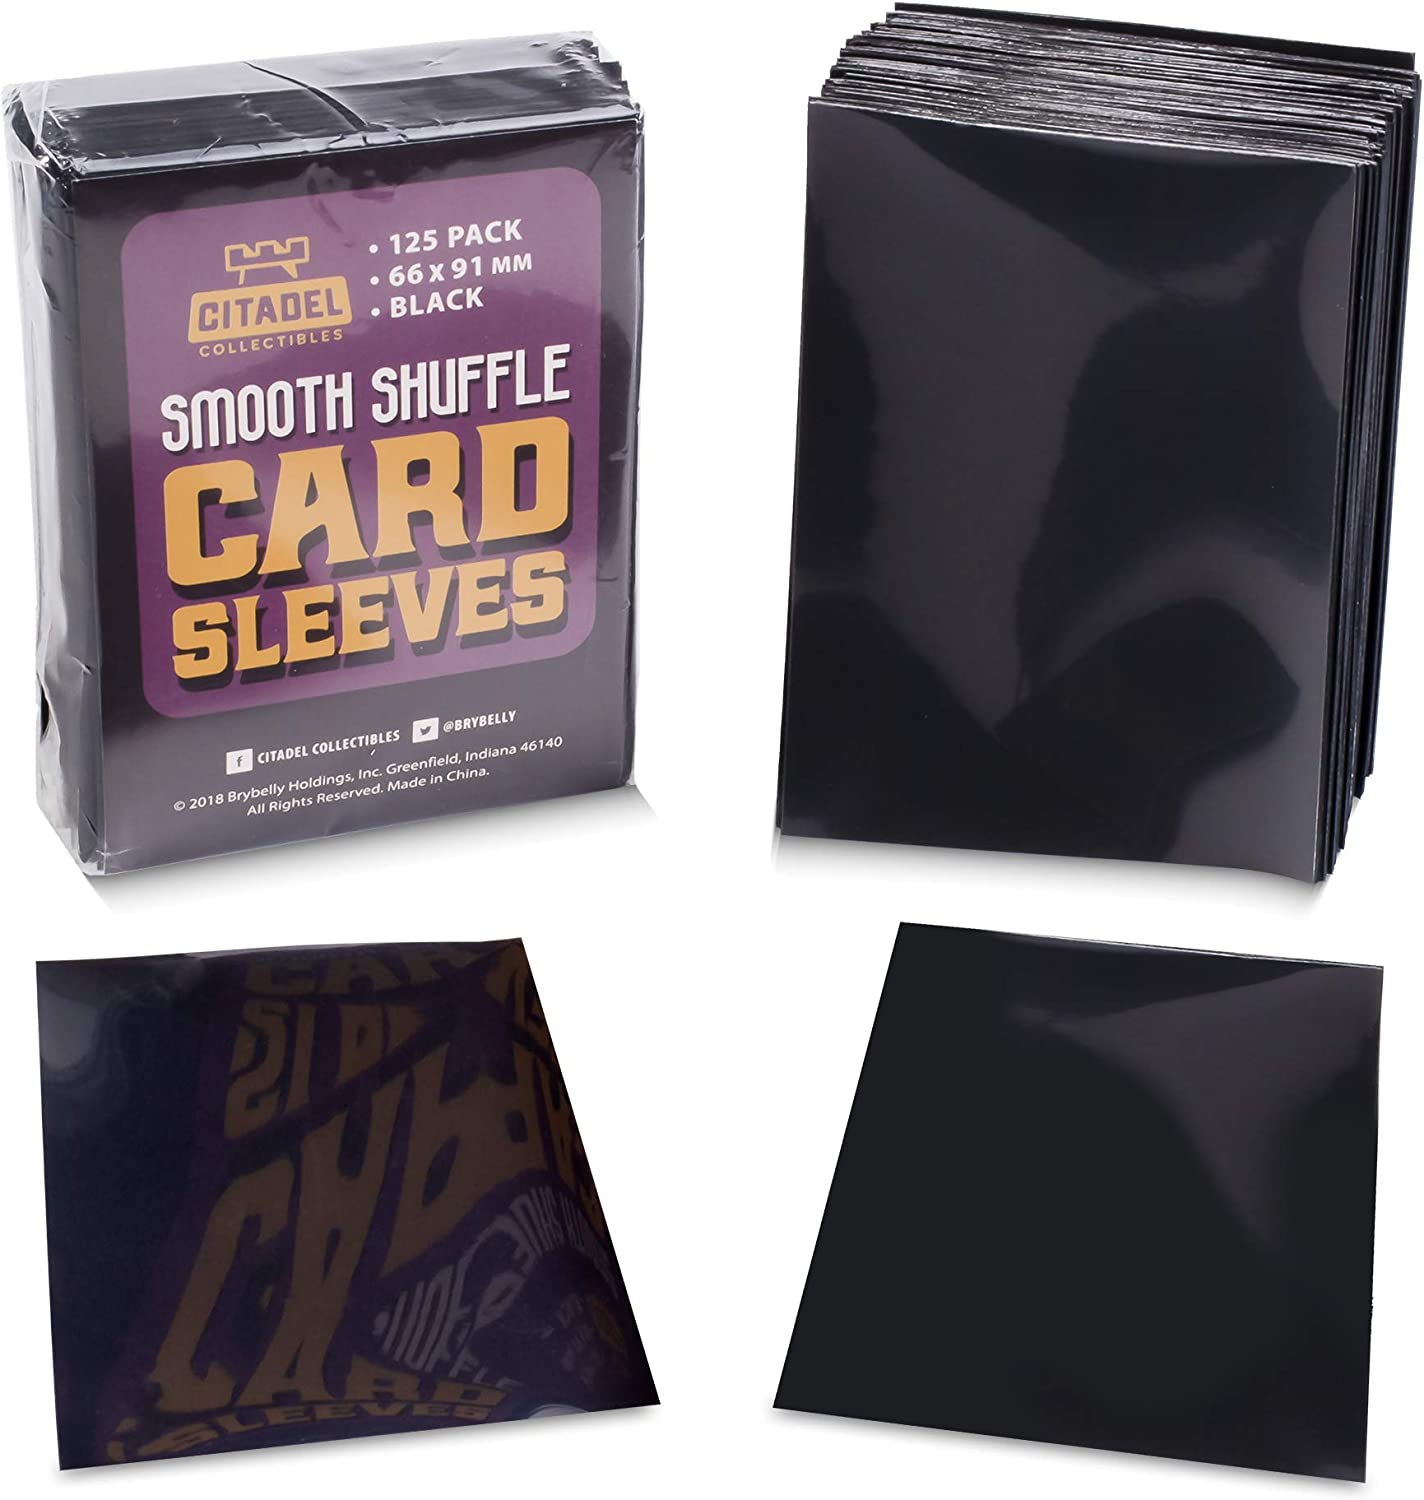 and Collecting Outer Sleeves Compatible with All Popular TCG Card Games Games Smooth Shuffle Durable Plastic Card Protectors for Draft 125 Black Matte Trading Card Sleeves